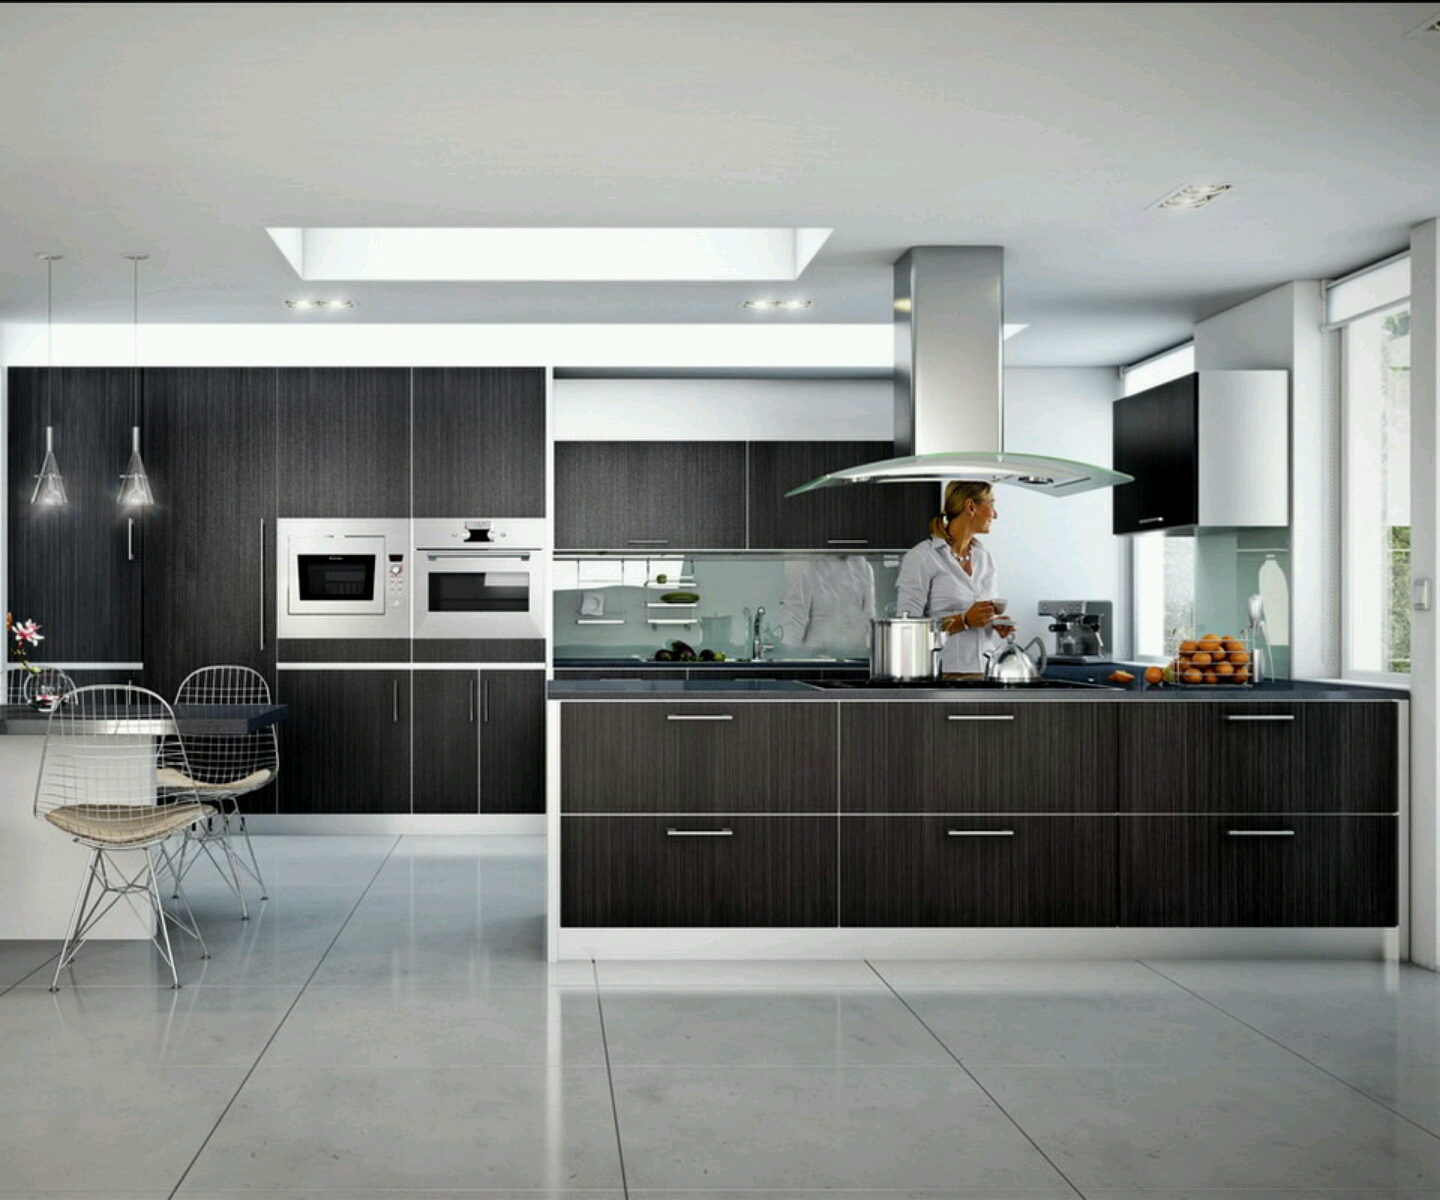 Modern kitchen designs photo gallery decorating ideas for New kitchen gallery